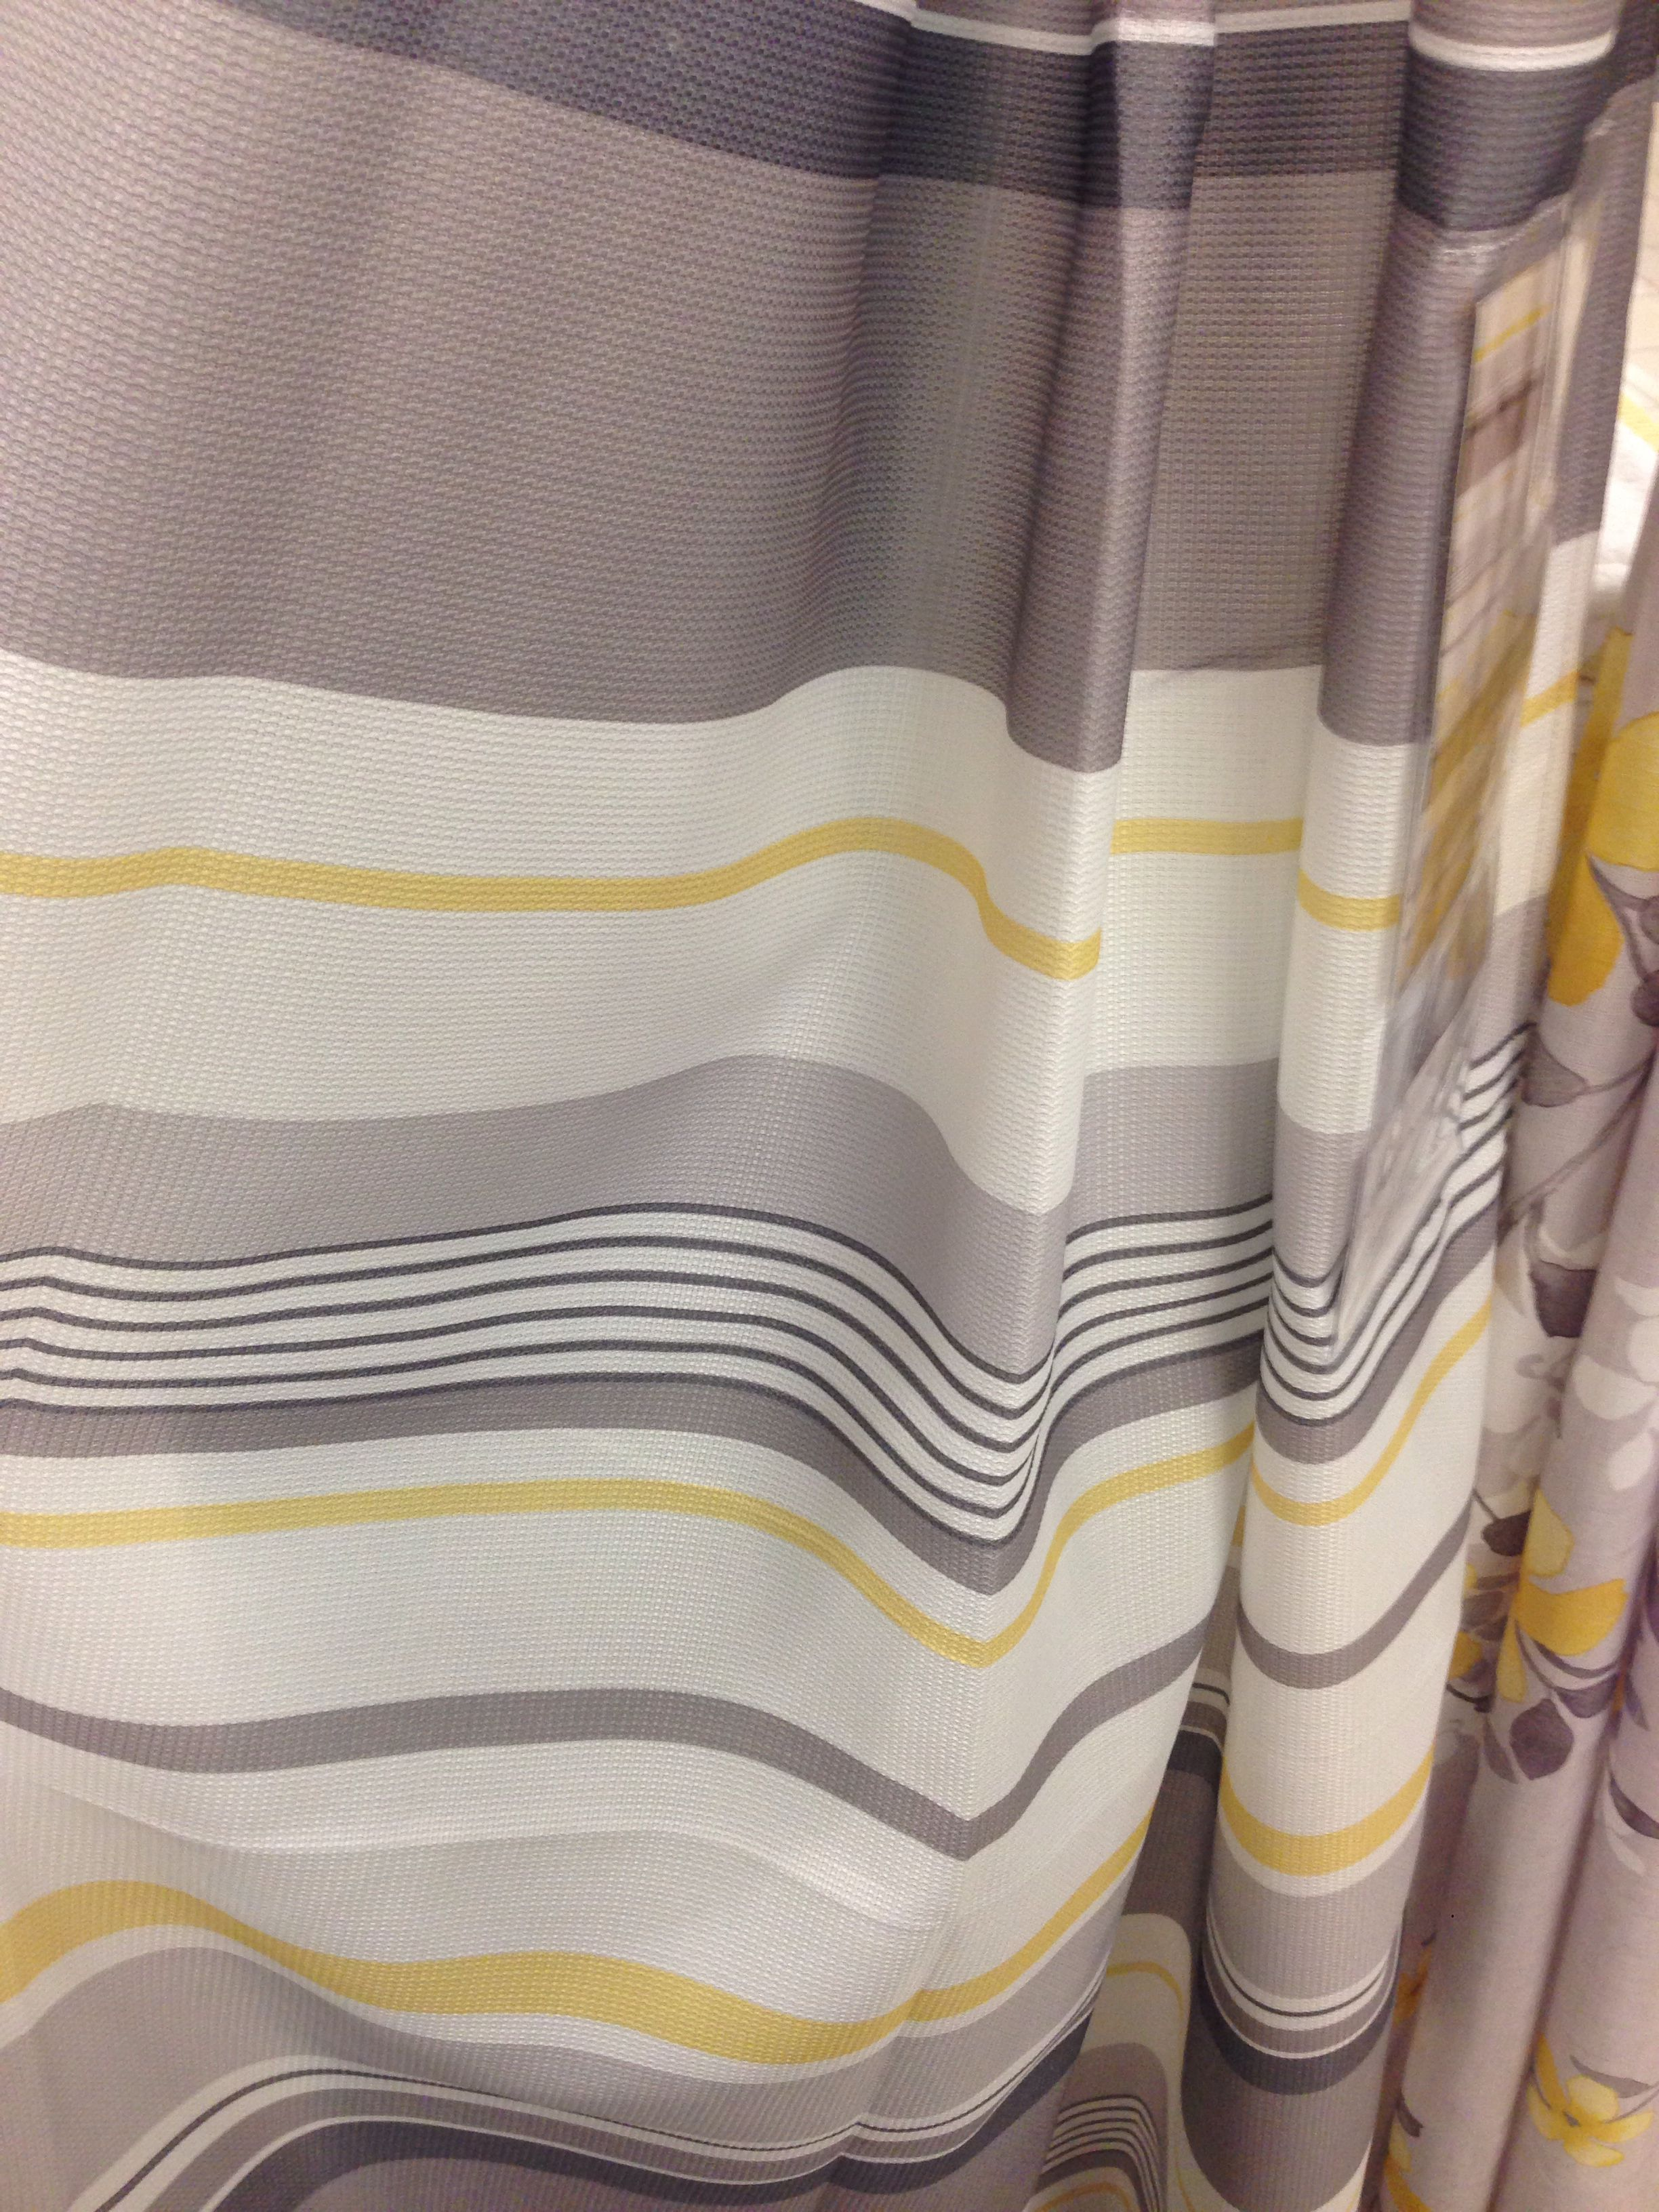 Kohls shower curtain #guestbath (With images) | Guest bath ...